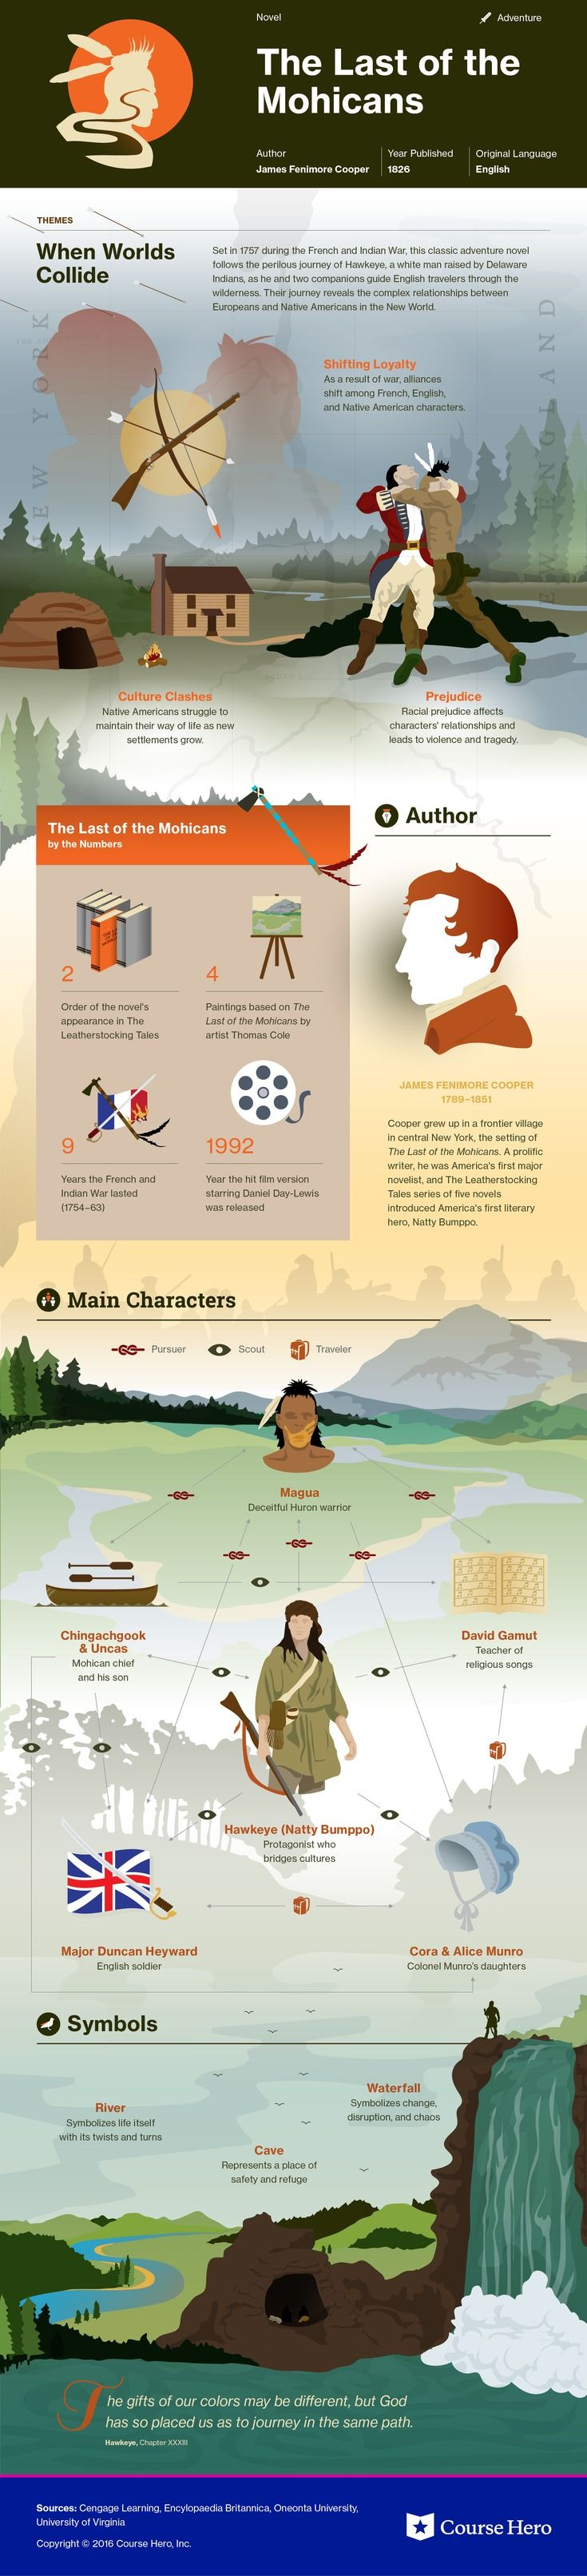 This @CourseHero infographic on The Last of the Mohicans is both visually stunning and informative!